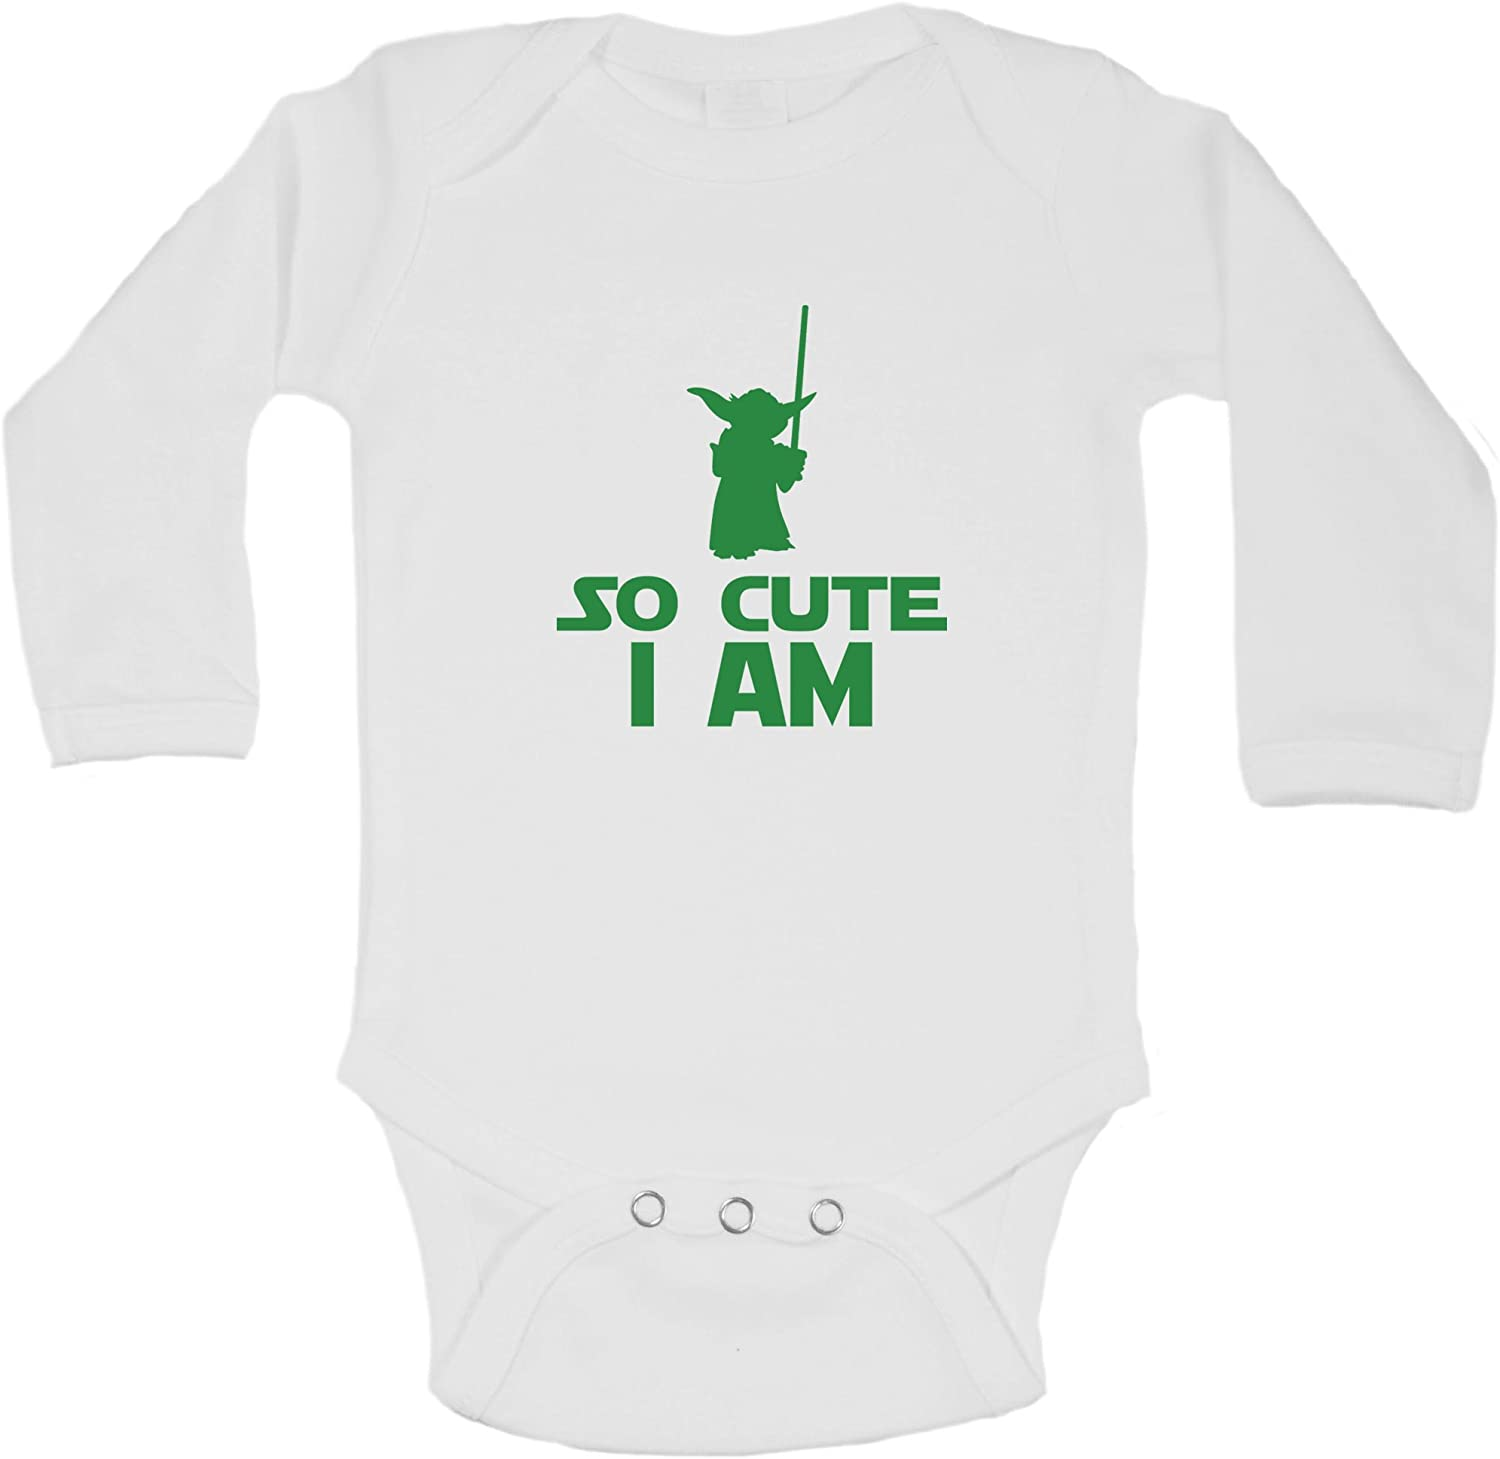 Funny Threadz Kids Funny Kids Onesie So Cute I Am Starwars Yoda Onesie